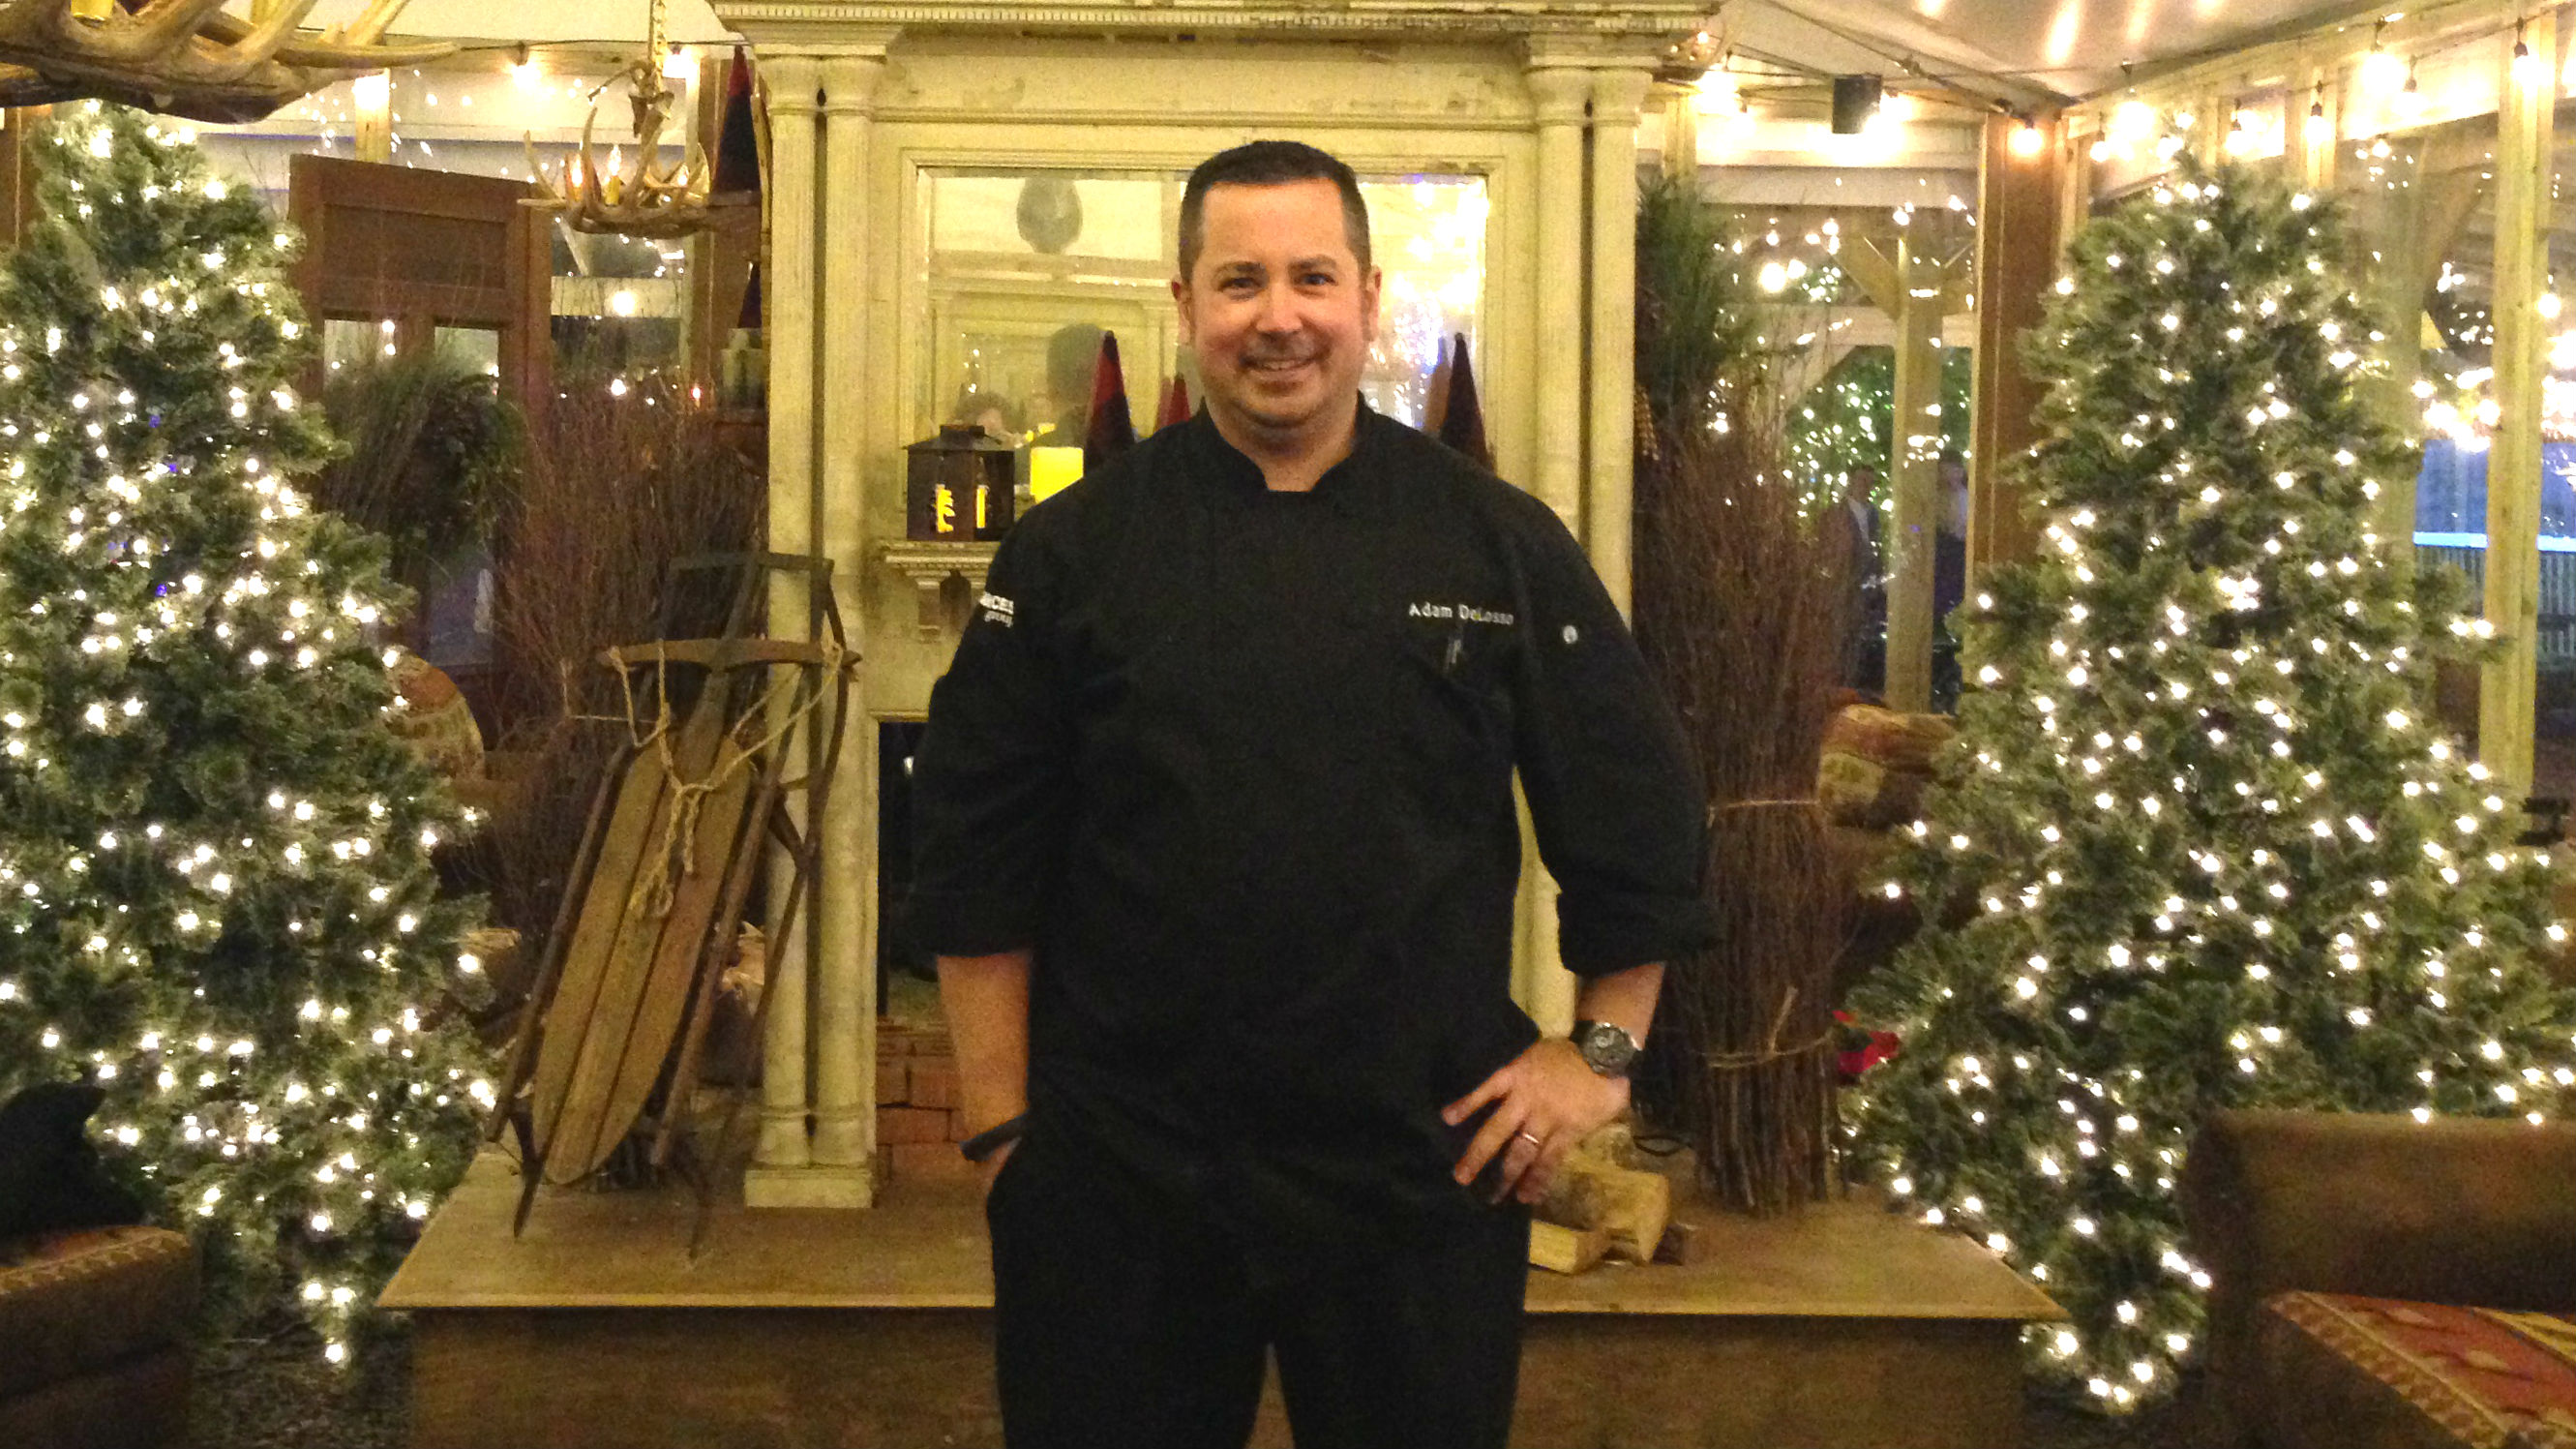 Adam DeLosso, Garces Events executive chef poses for a picture at Winterfest. (Credit: Hadas Kuznits)